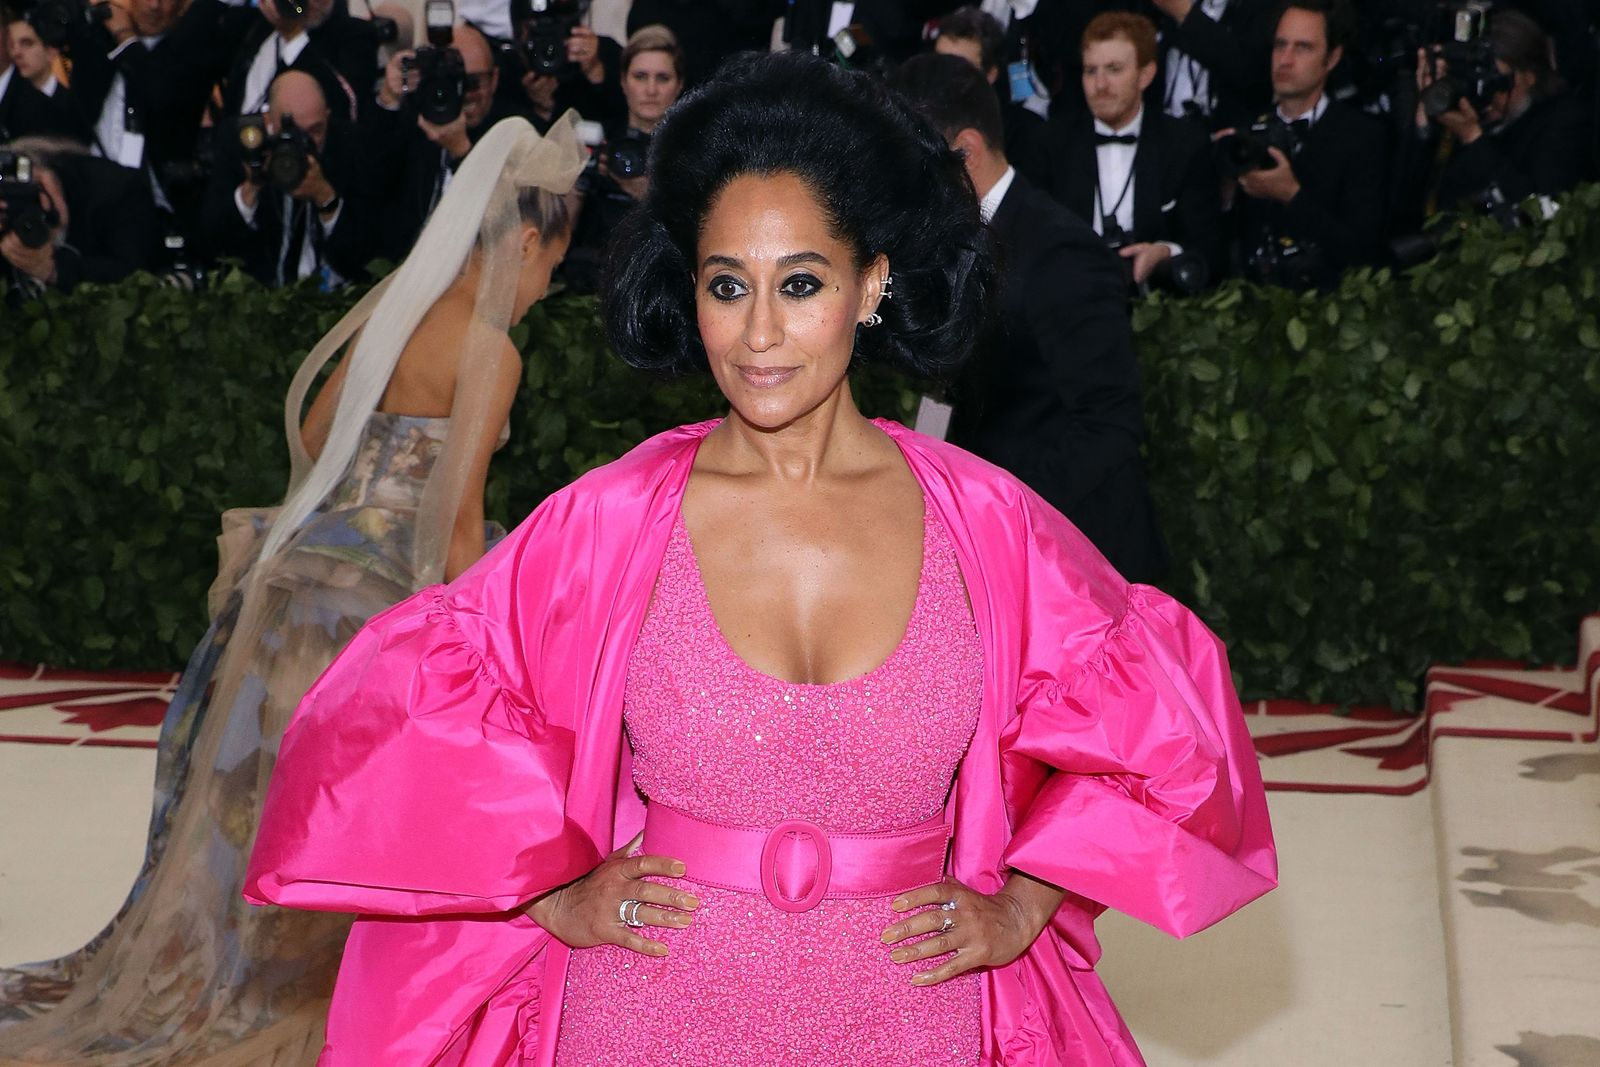 Tracee Ellis Ross attends the MET Gala in New York | Source: Getty Images/GlobalImagesUkraine